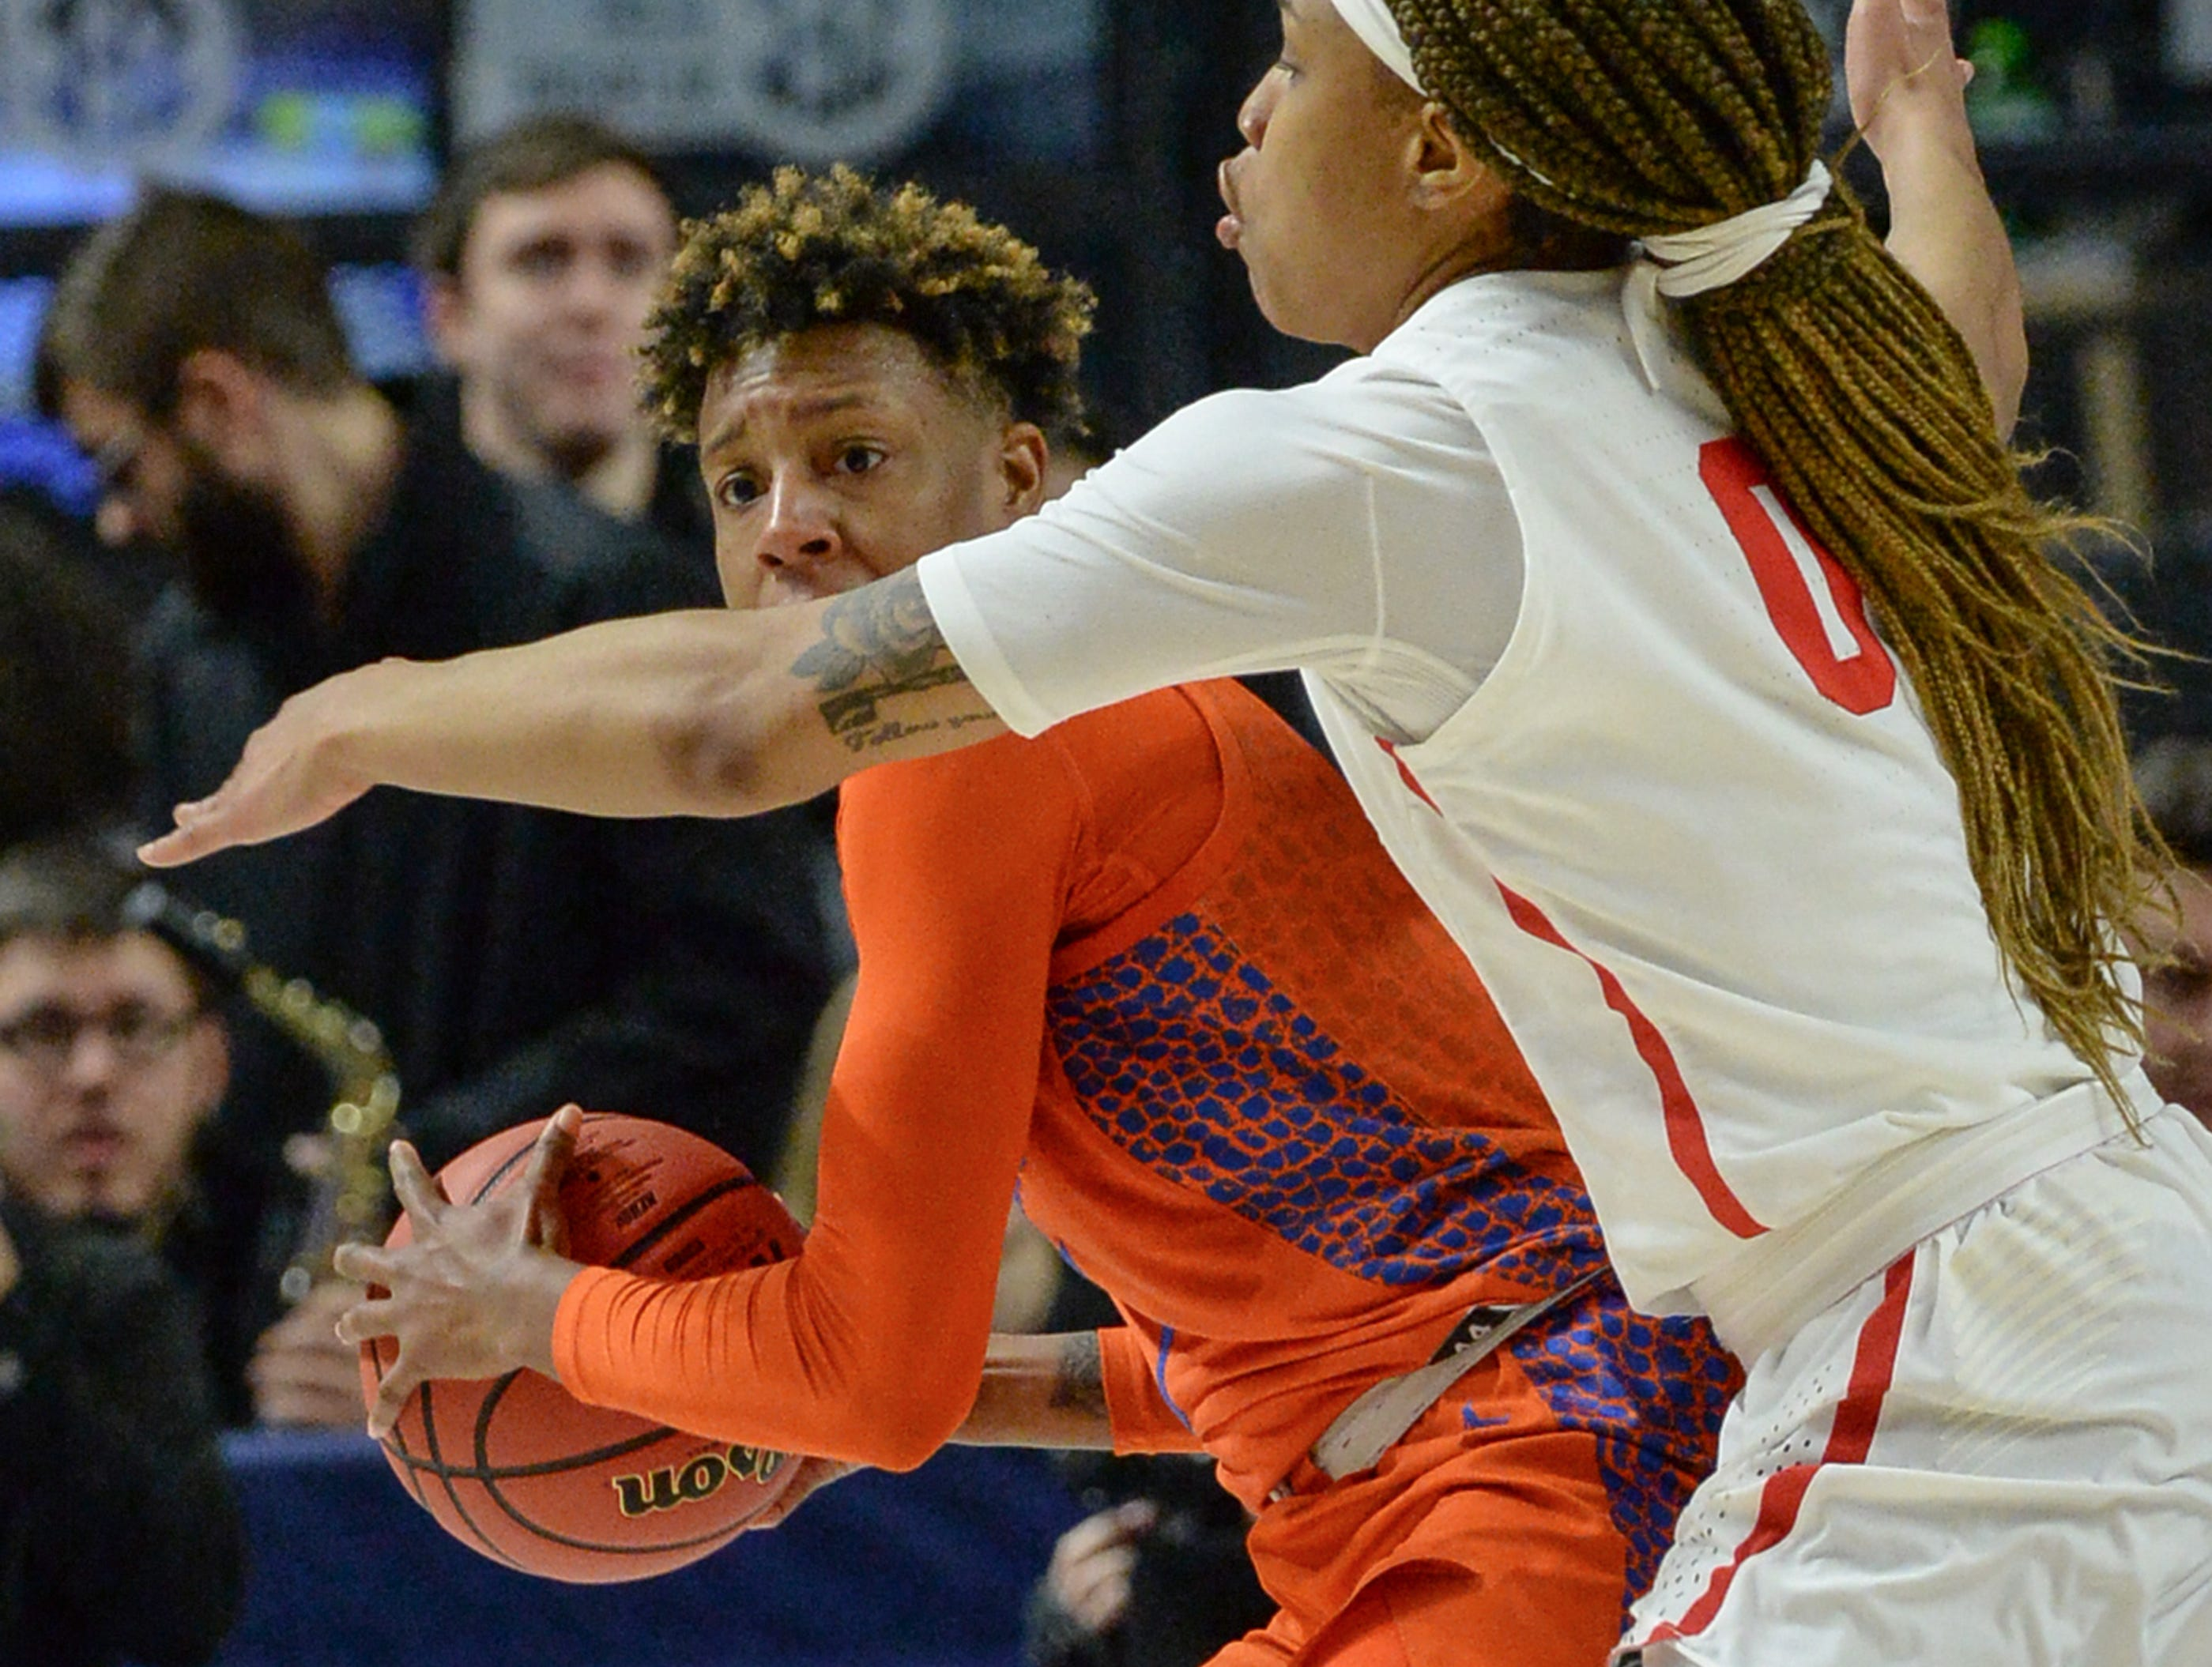 Florida guard Kiara Smith(1) looks to pass near Ole Miss freshman Gabby Crawford(0) during the fourth quarter of the Southeastern Conference Women's Tournament game at Bon Secour Wellness Arena in Greenville Wednesday, March 6, 2019.